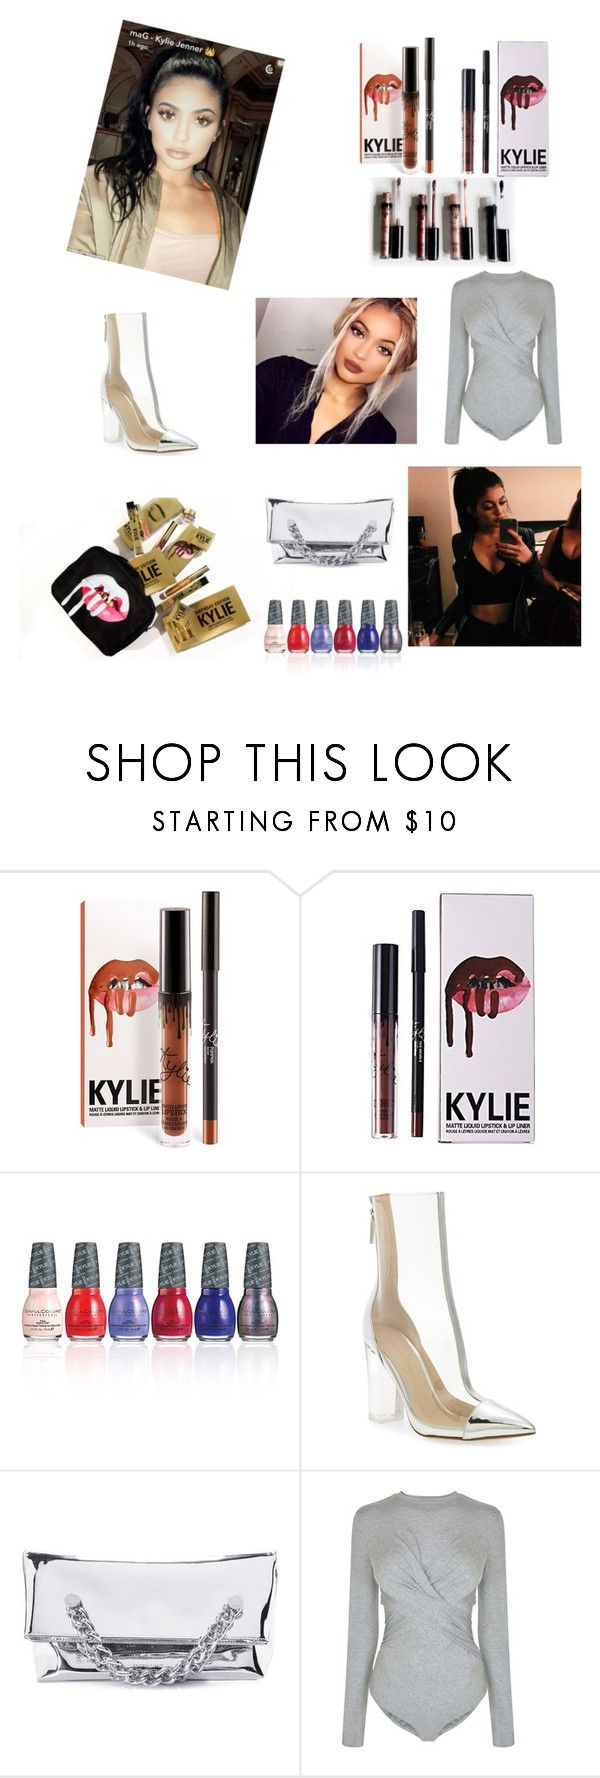 """""""Kylie Jenner"""" by glitterqueenz ❤ liked on Polyvore featuring Kylie Cosmetics, SinfulColors, Kendall + Kylie and KylieJenner"""